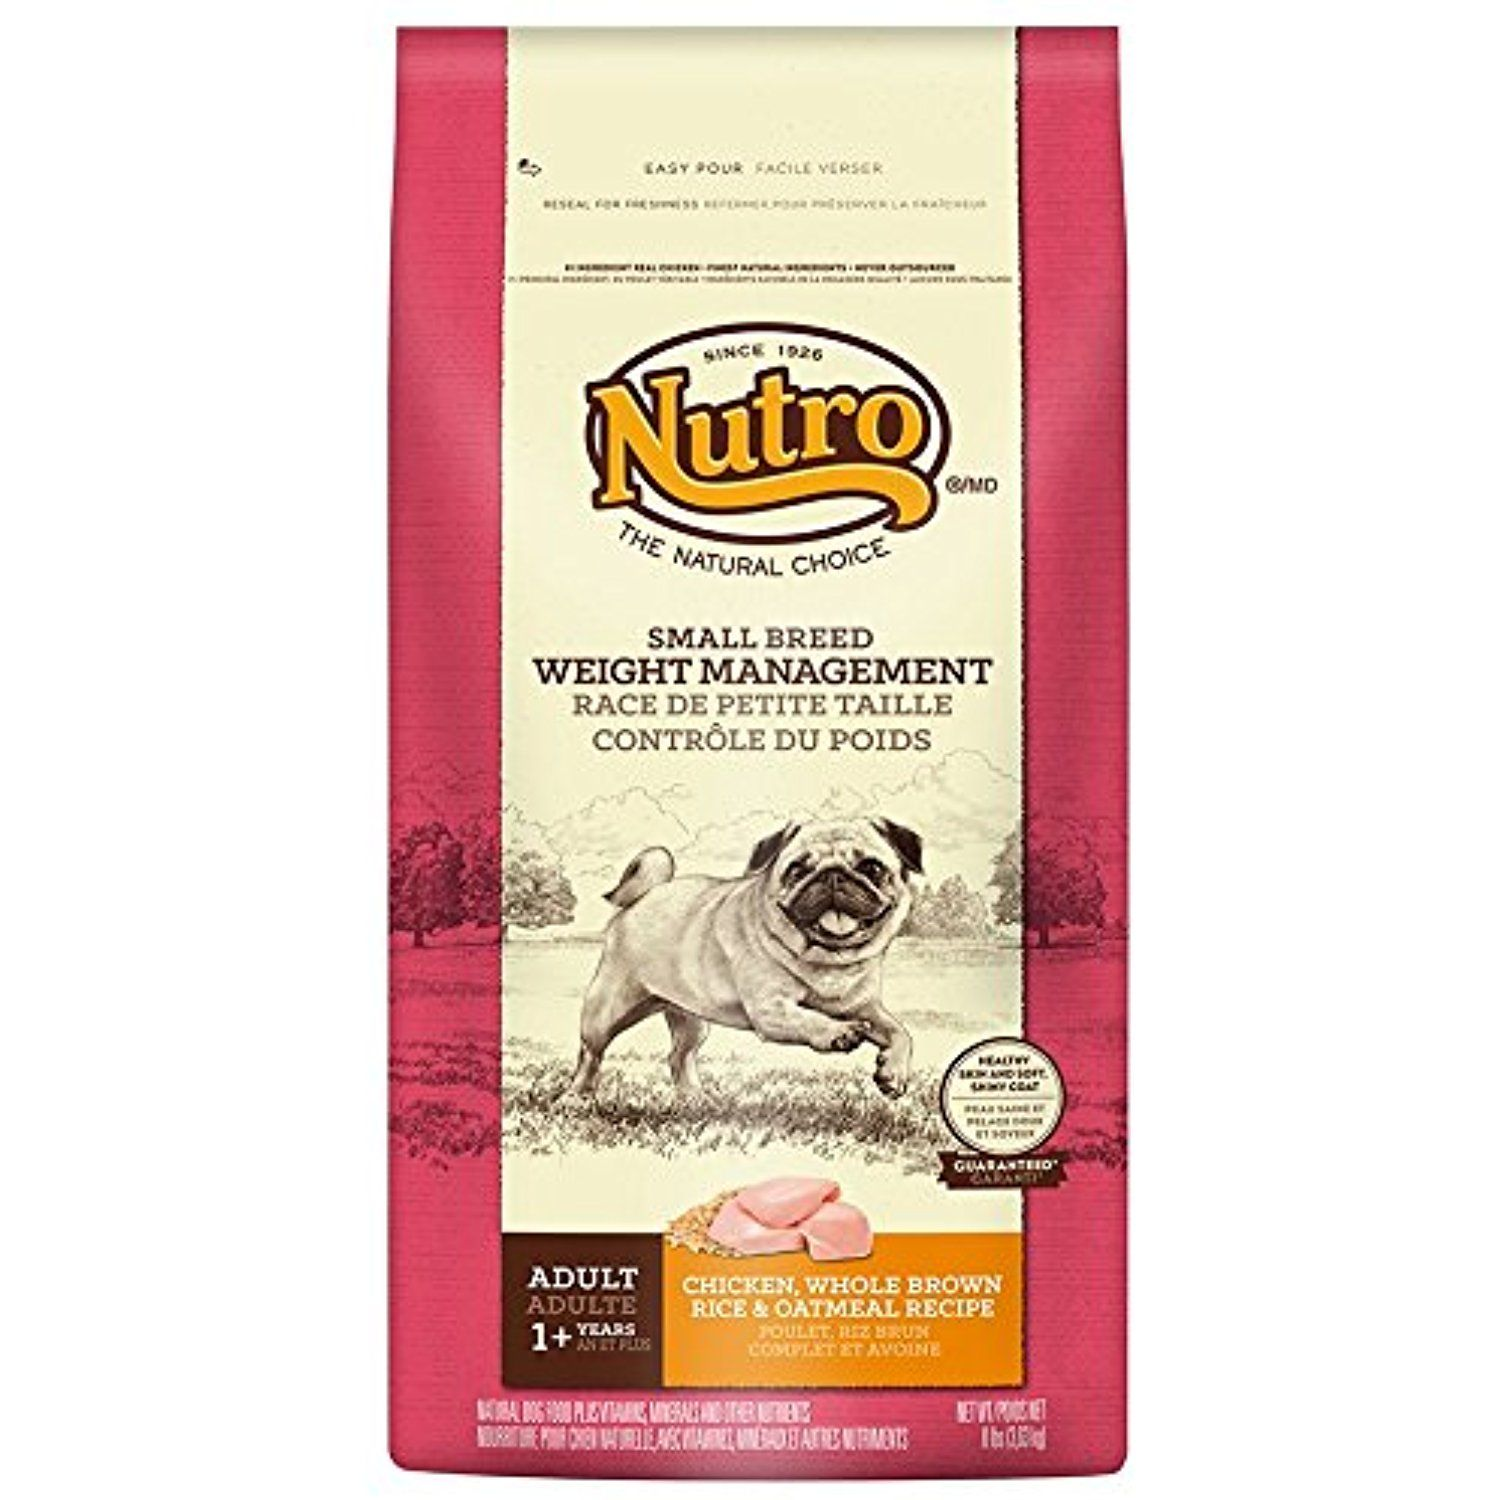 Nutro Small Breed Weight Management Dry Dog Food Chicken Brown